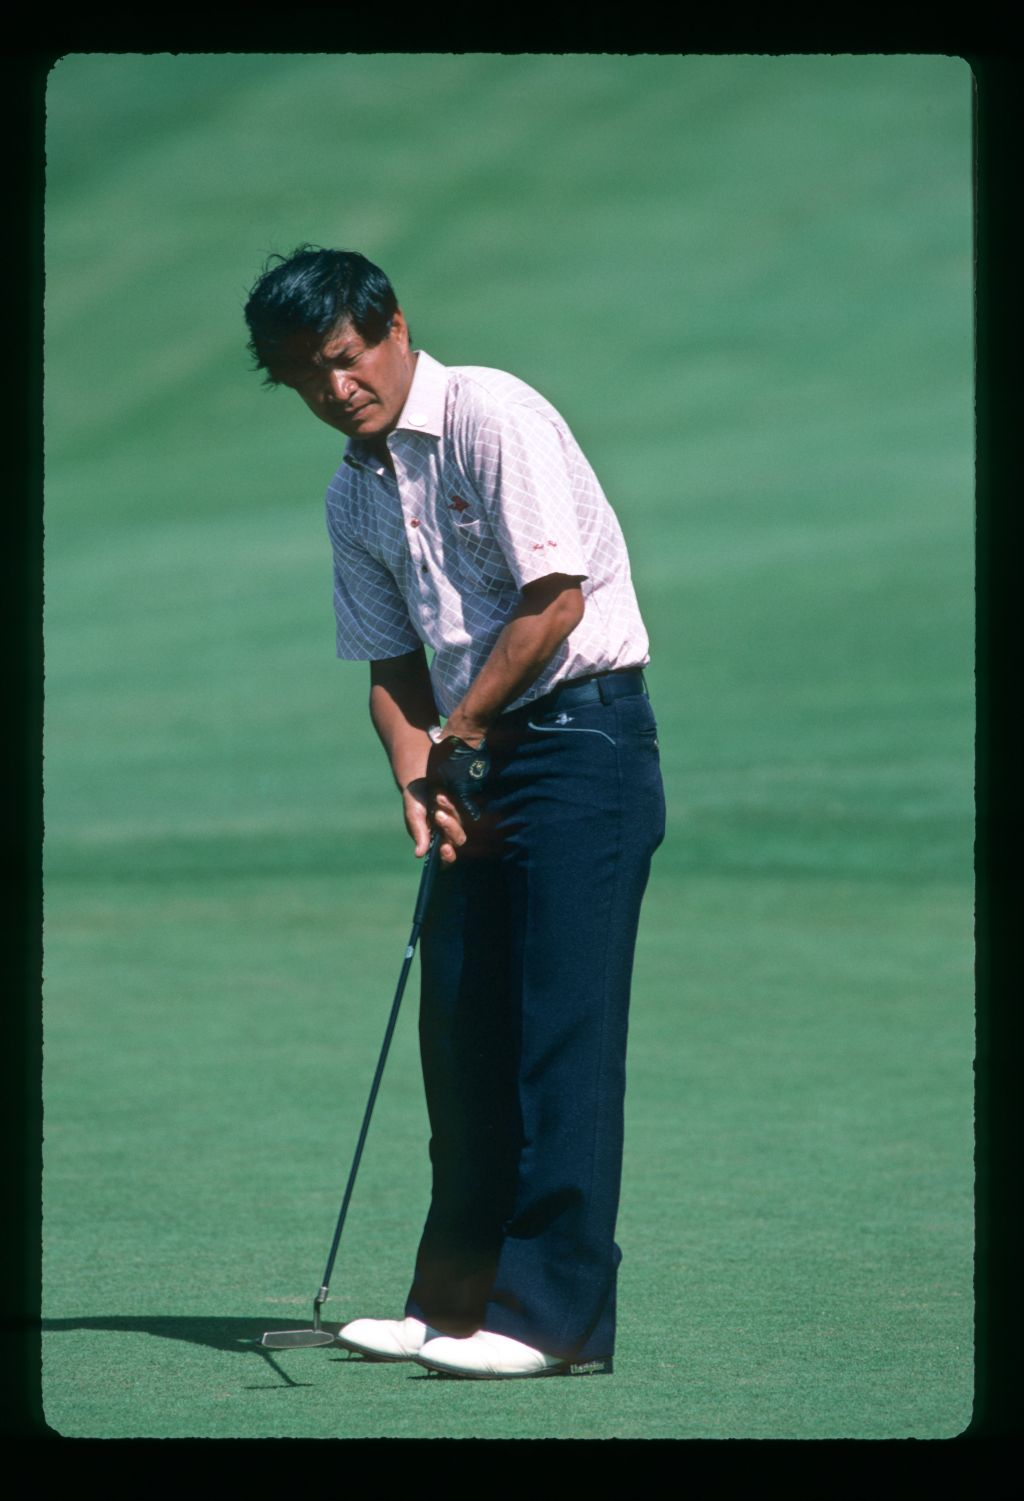 A golfer putting at the 1984 Kapalua International Golf Championship